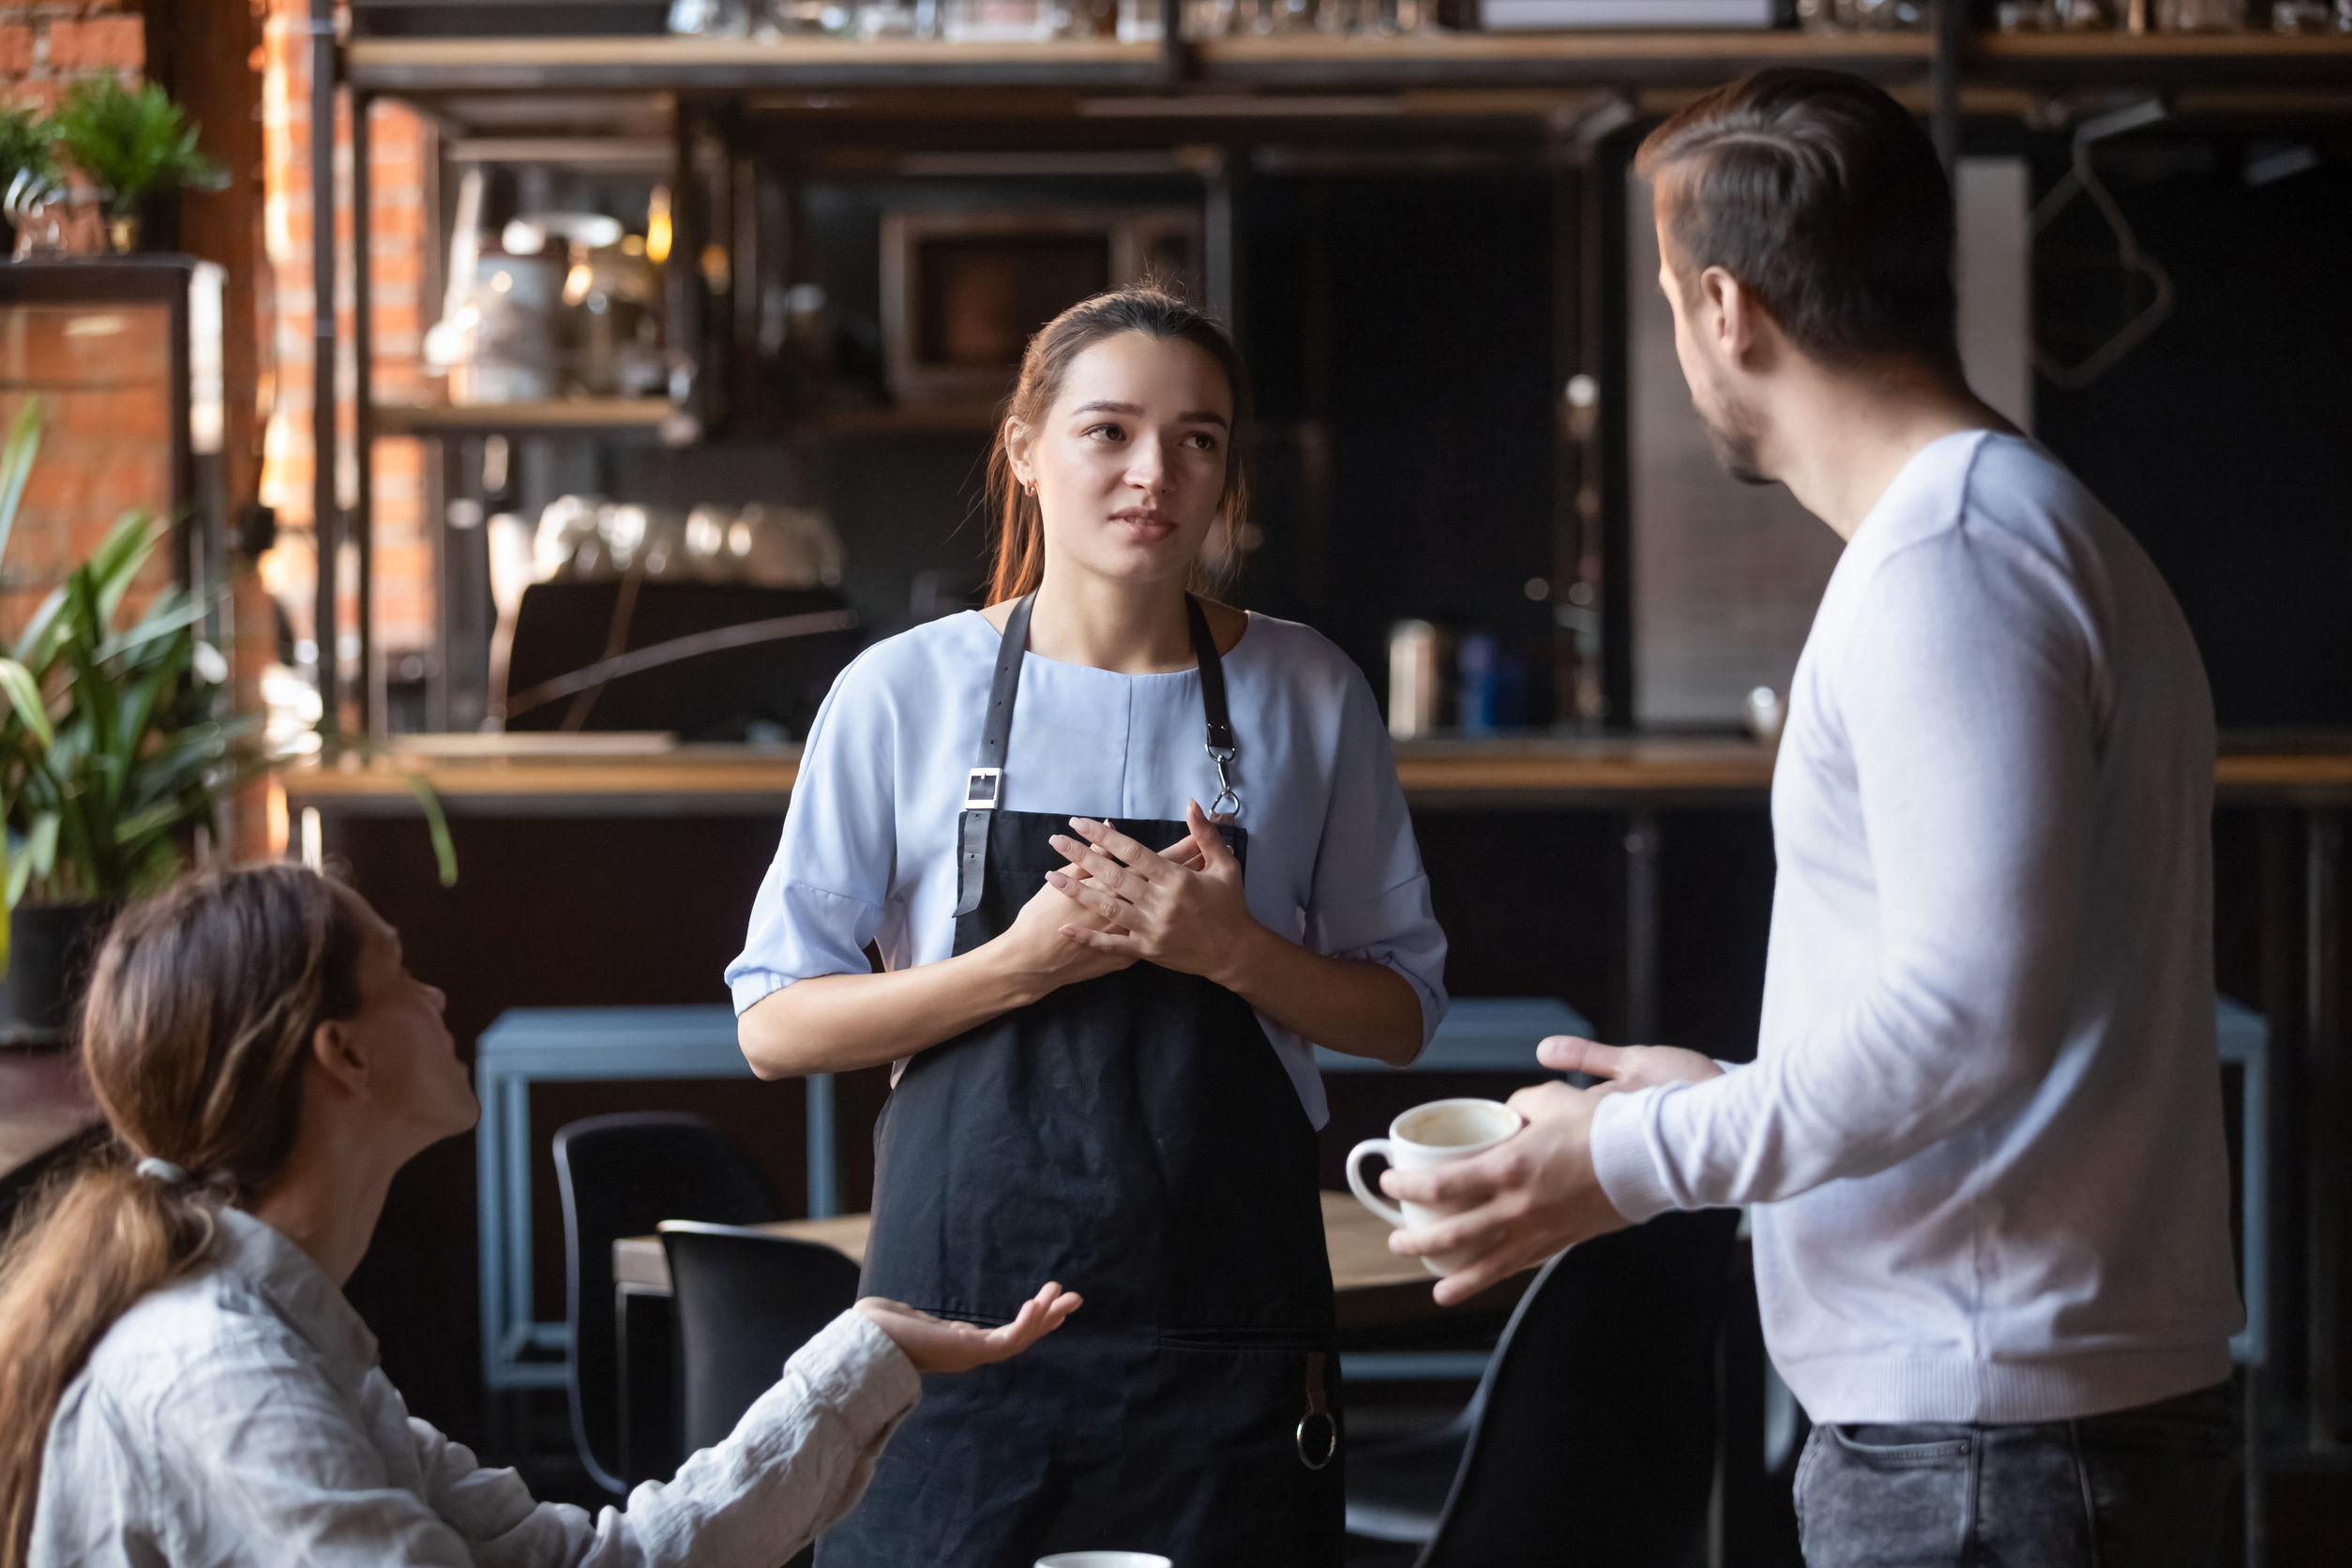 Managing customer conflict in the workplace